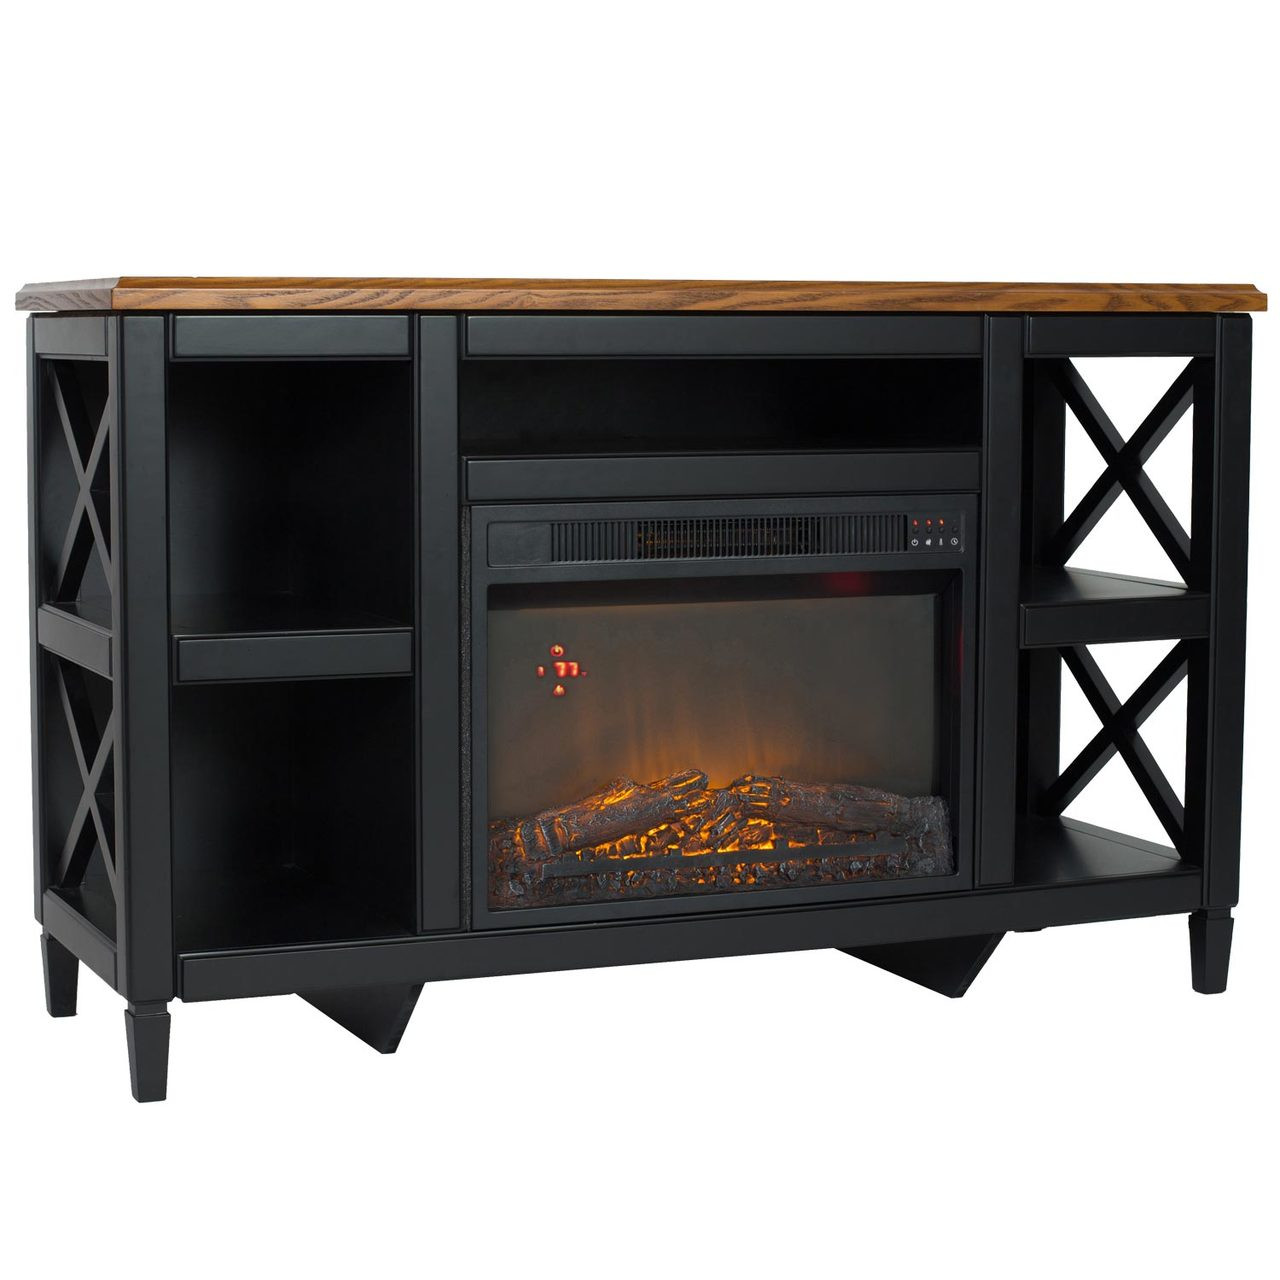 comfort glow qef7541rkd camden media center with infrared quartz rh worldmkting com Entertainment Center with Fireplace Corner Electric Fireplace Media Center